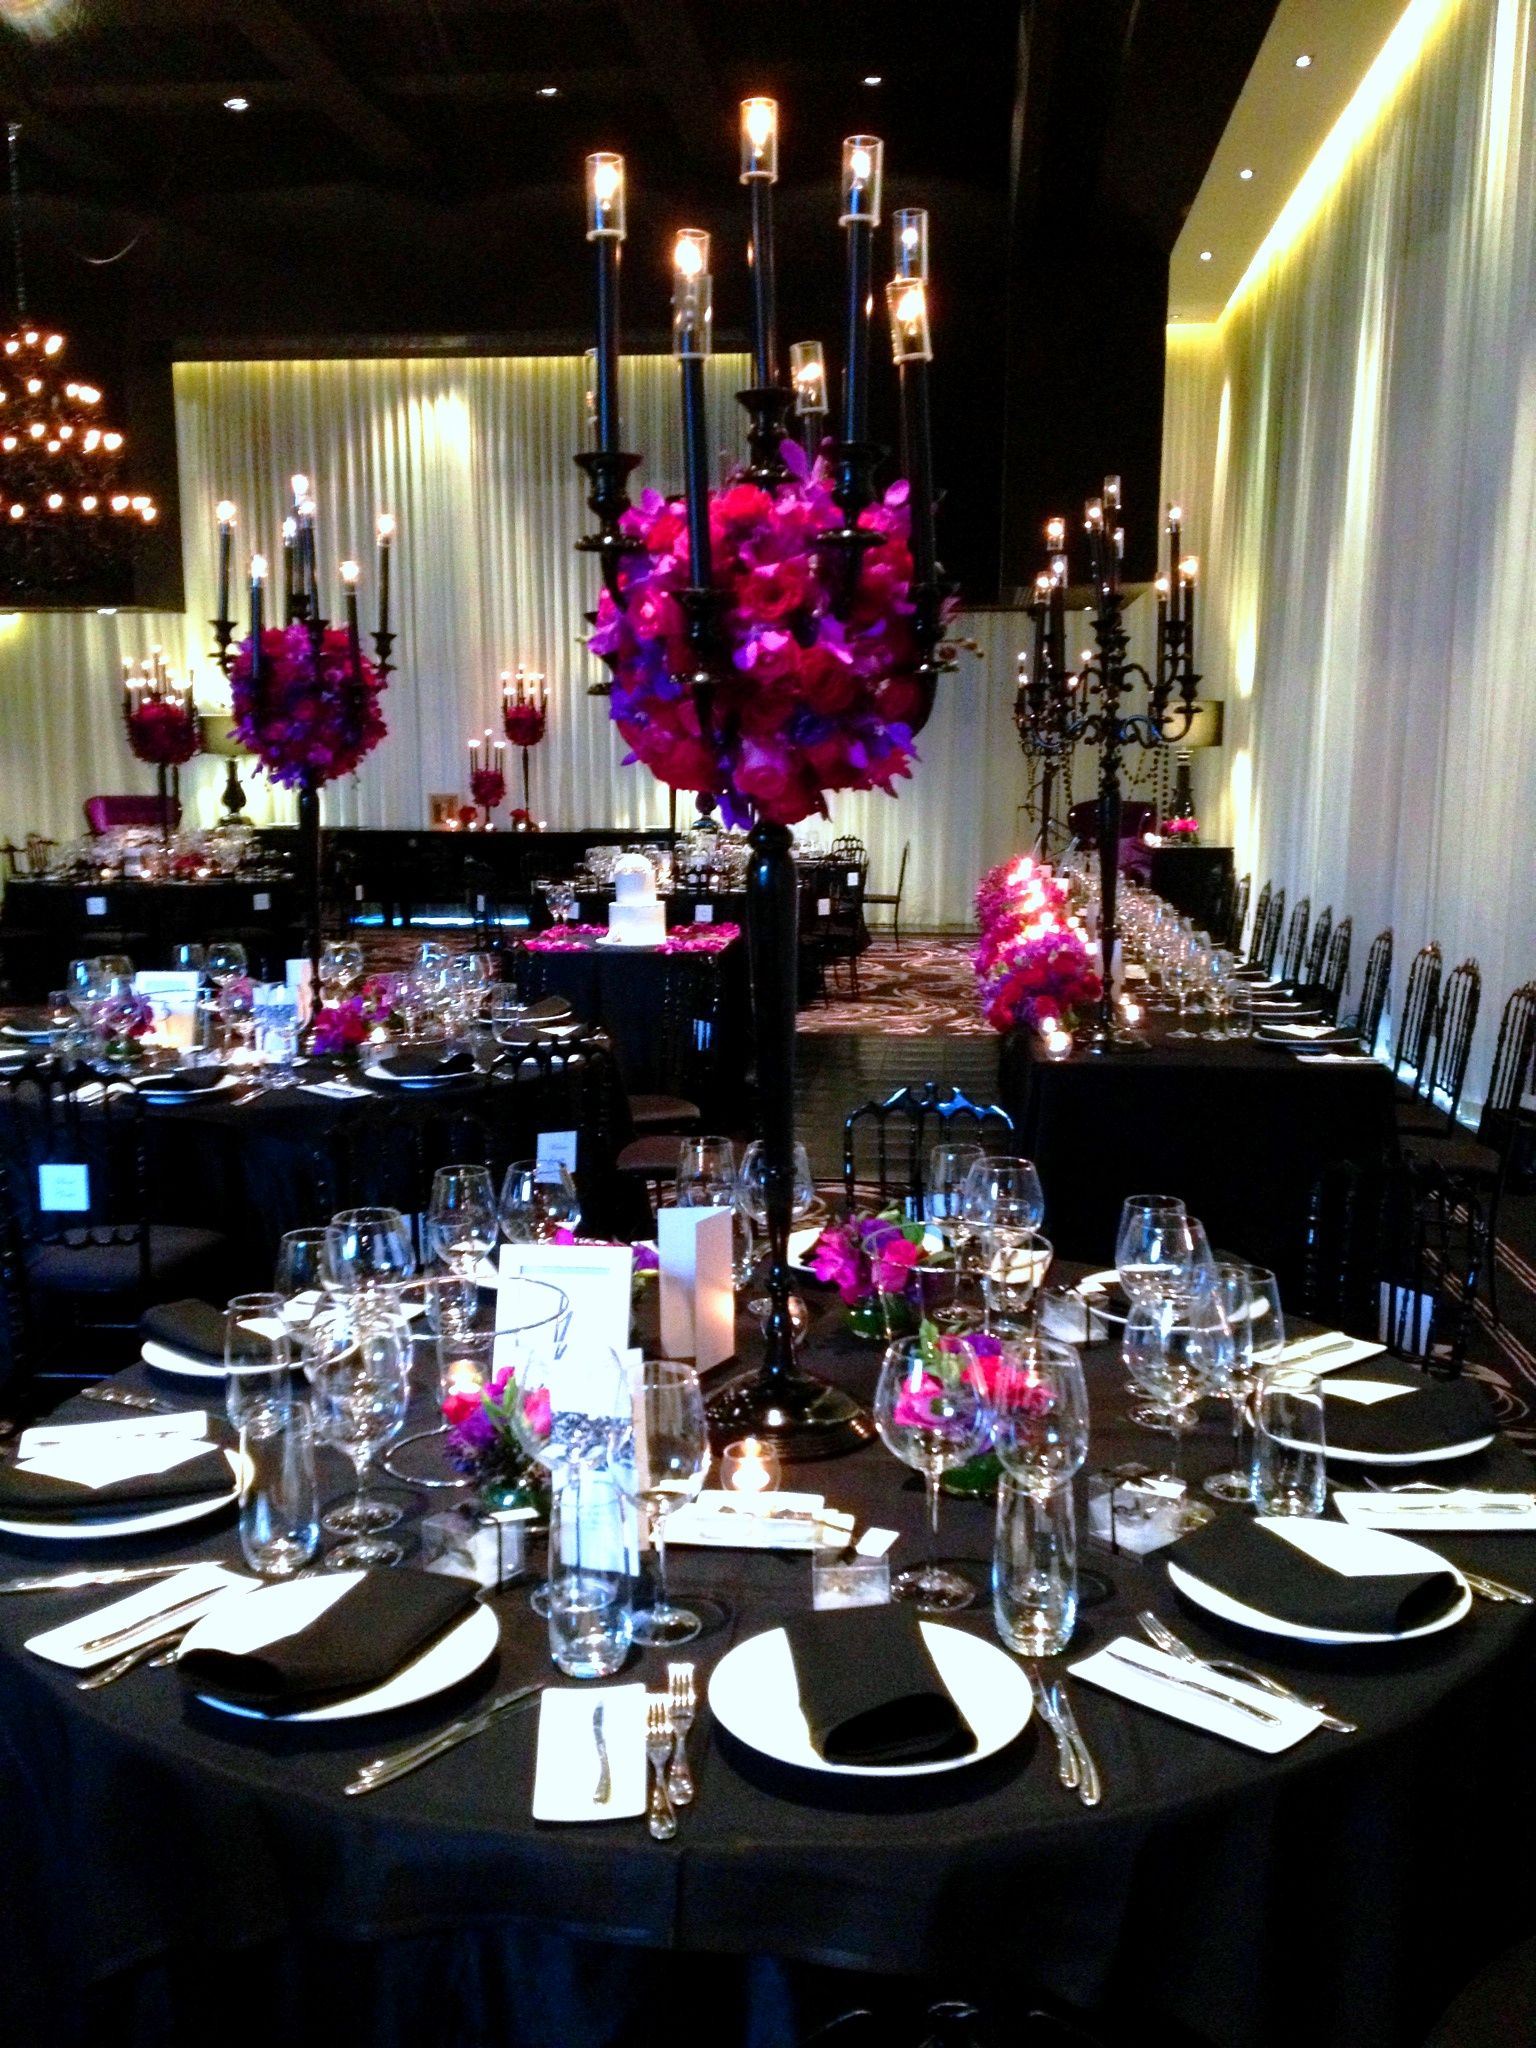 Decor It Events Wedding Deco Www Decorit Com Au Www Facebook Com